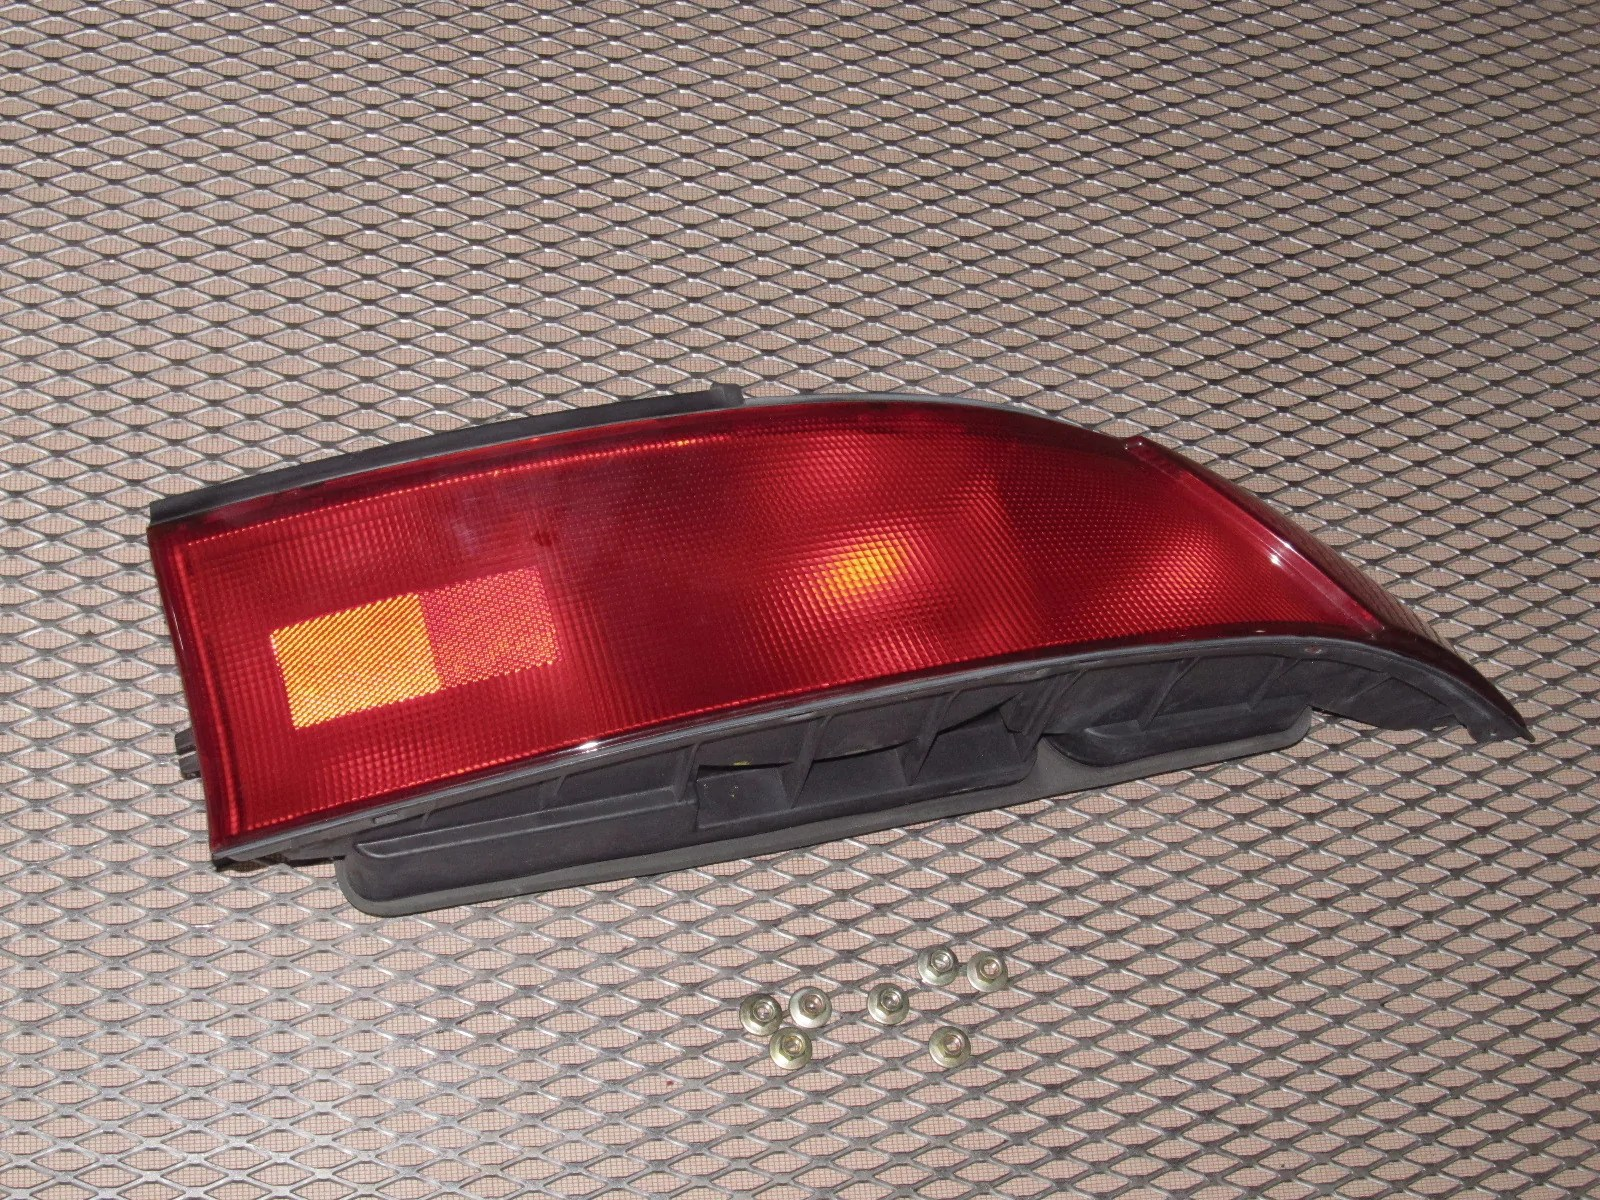 98 99 mitsubishi eclipse oem tail light right product image  [ 1600 x 1200 Pixel ]